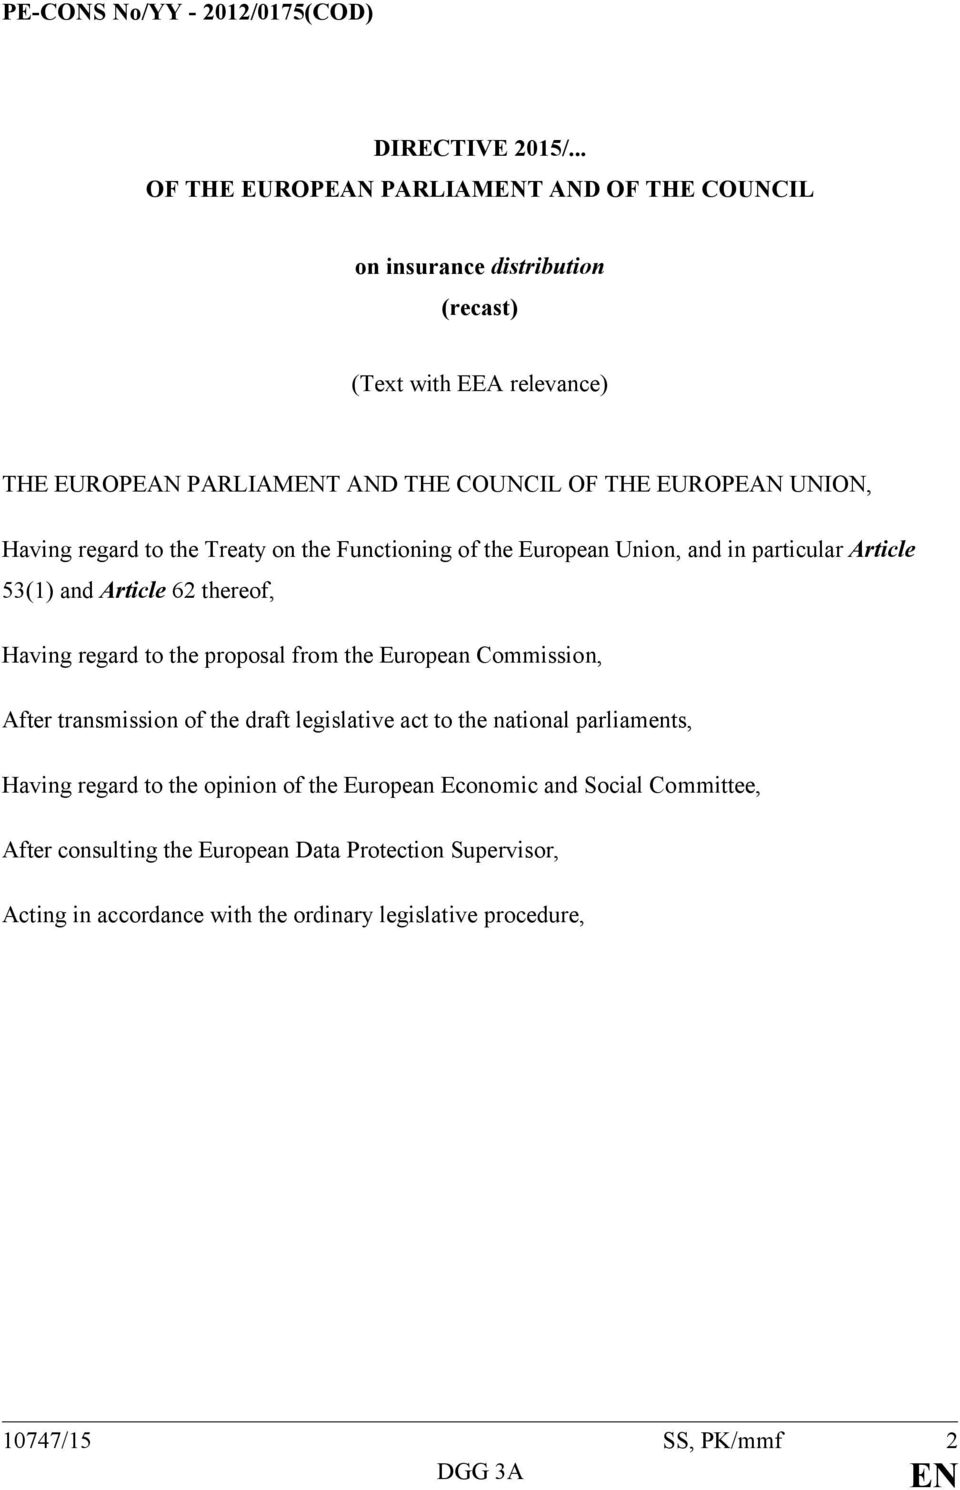 Having regard to the Treaty on the Functioning of the European Union, and in particular Article 53(1) and Article 62 thereof, Having regard to the proposal from the European